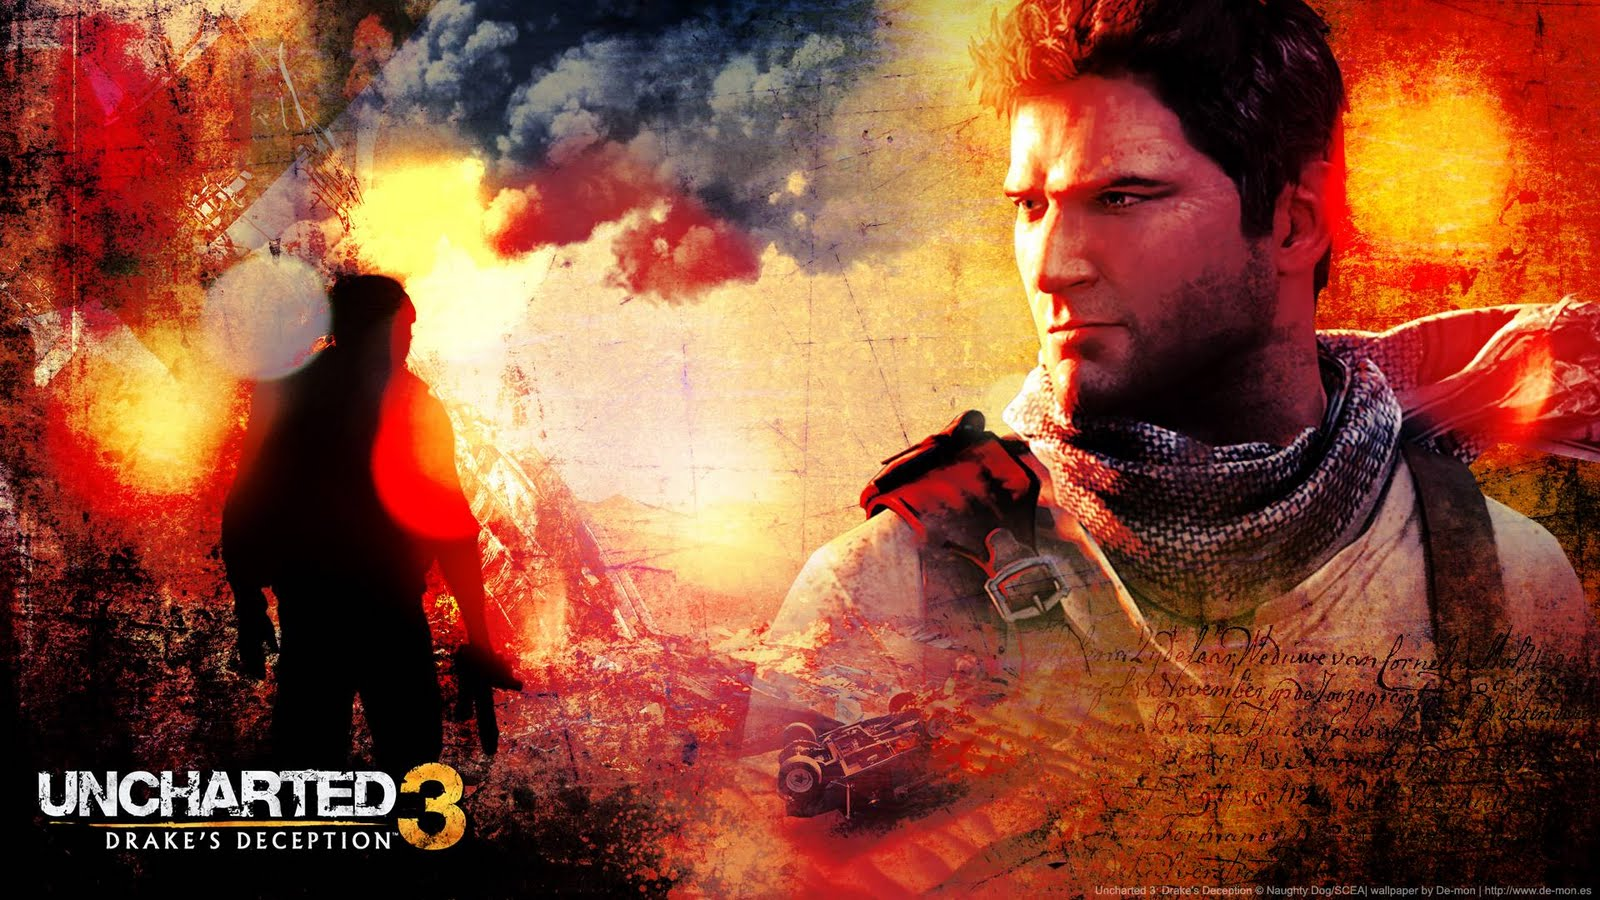 http://2.bp.blogspot.com/-CIRKdJtHuXw/TjI9BmTMJnI/AAAAAAAACv0/Eu-Or2OvVcE/s1600/uncharted-3-wallpapers-in-hd.jpg